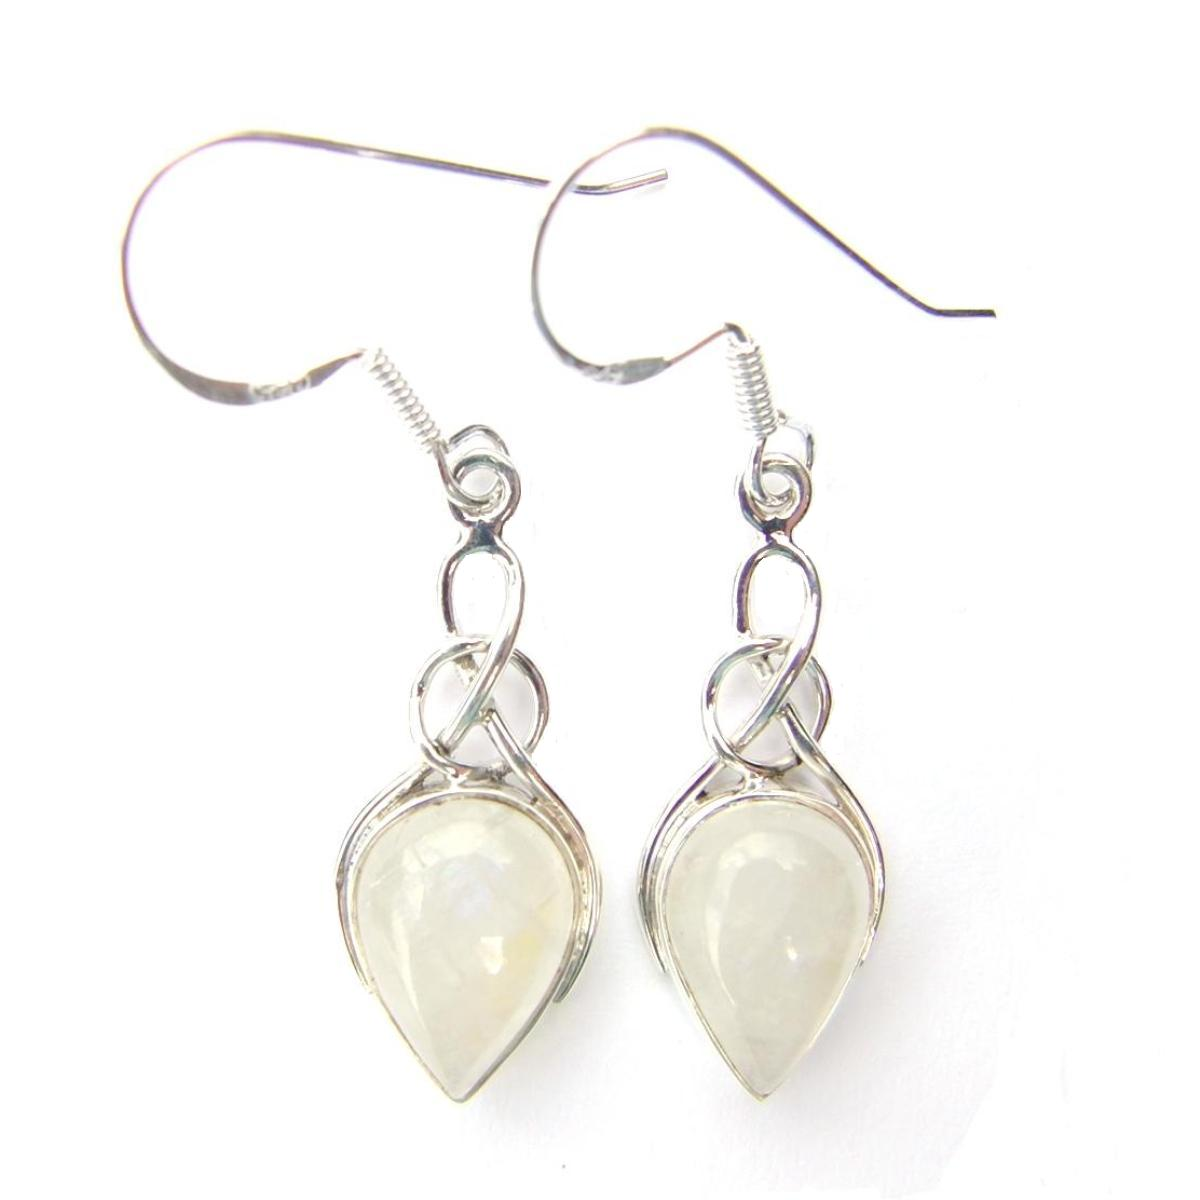 Moonstone Teardrop Knot Earrings